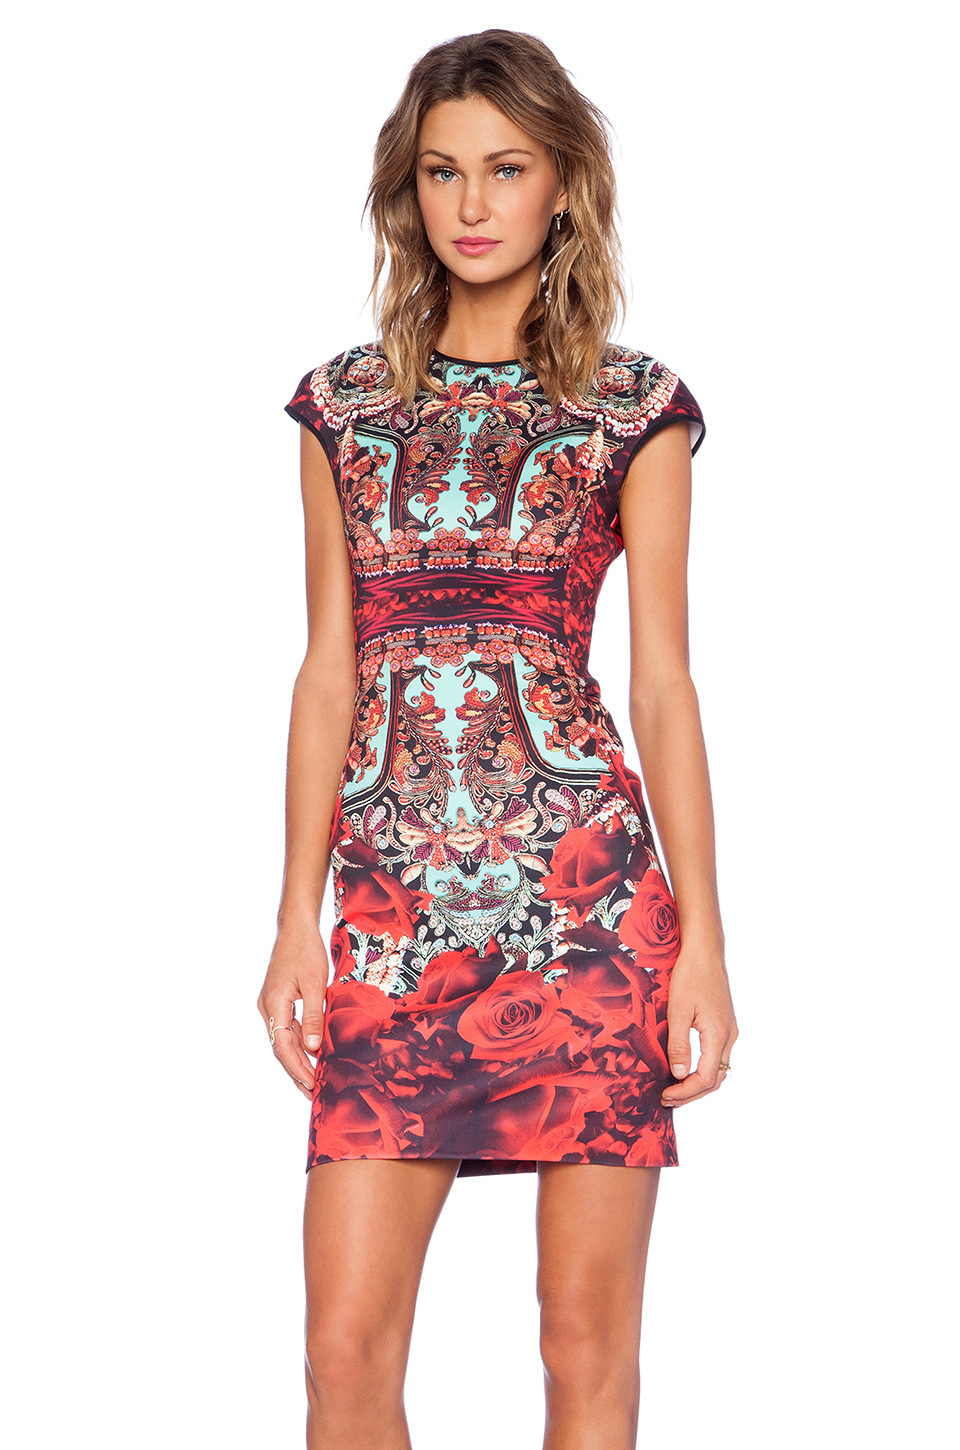 Where to buy classy dresses